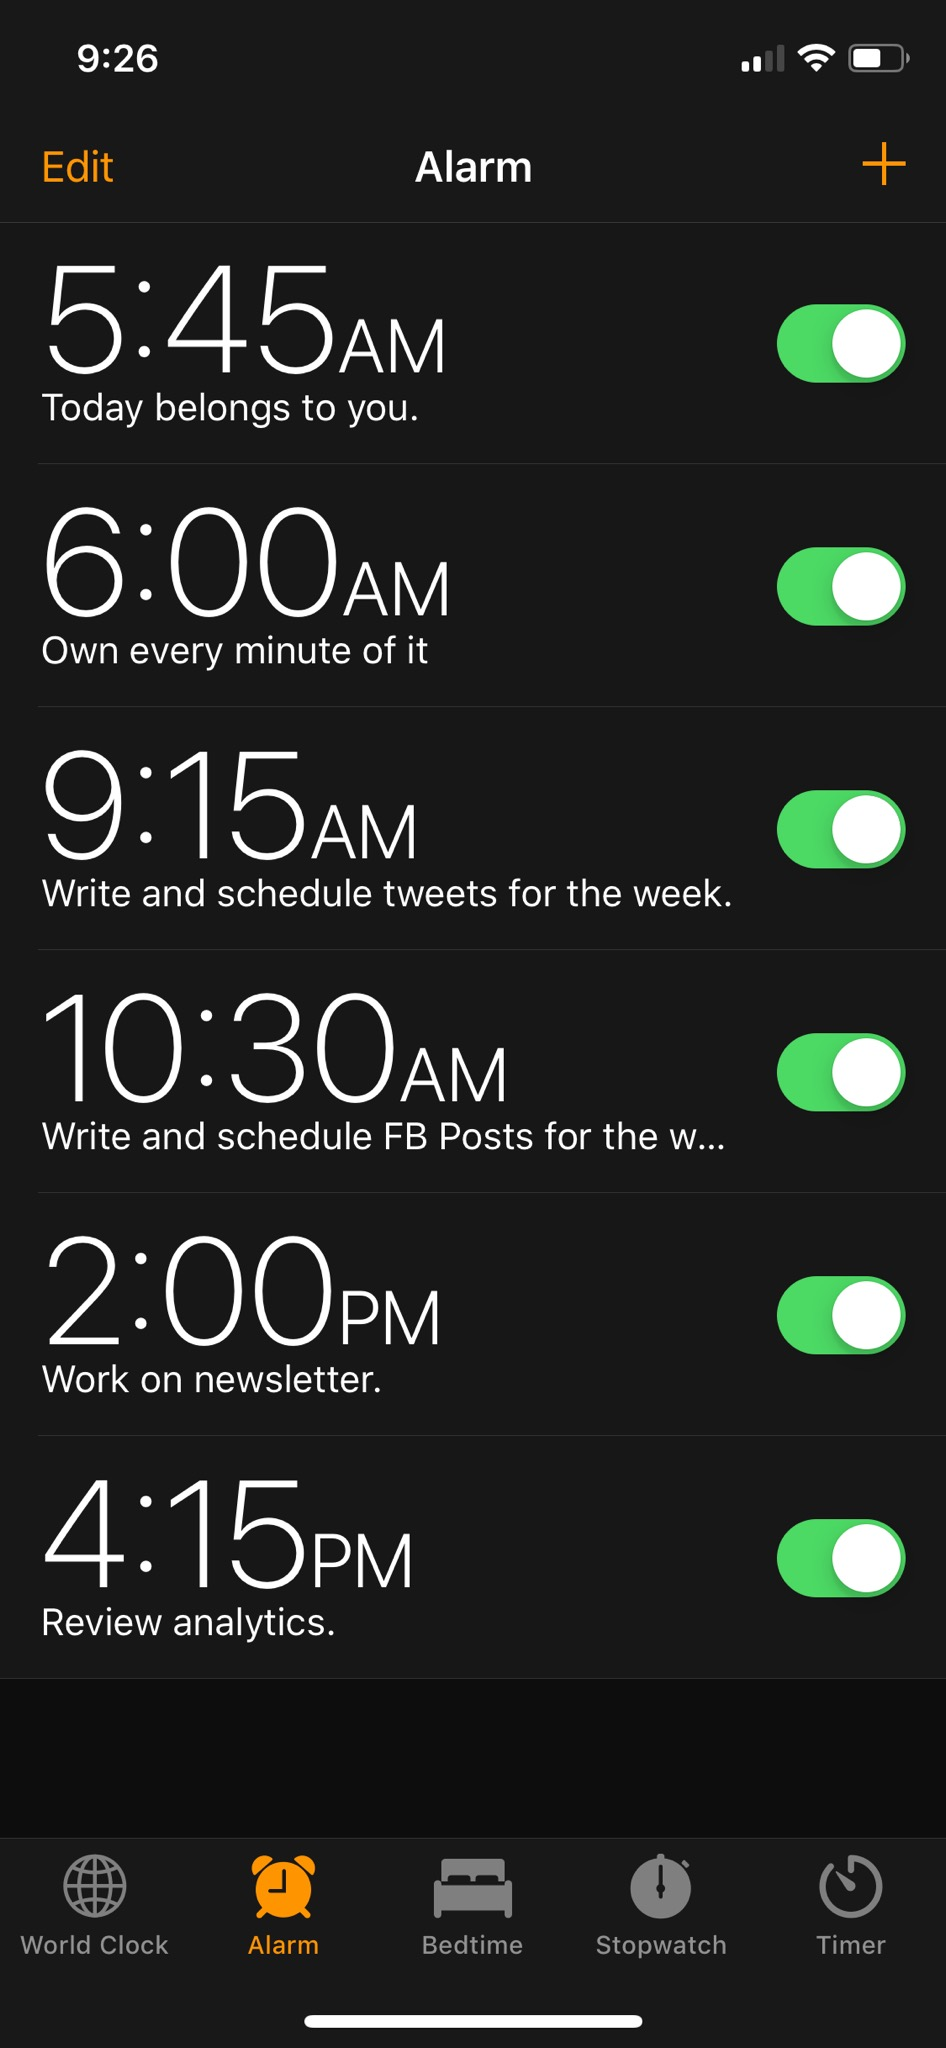 Screenshot of alarms set throughout the day with reminders for specific marketing tasks.